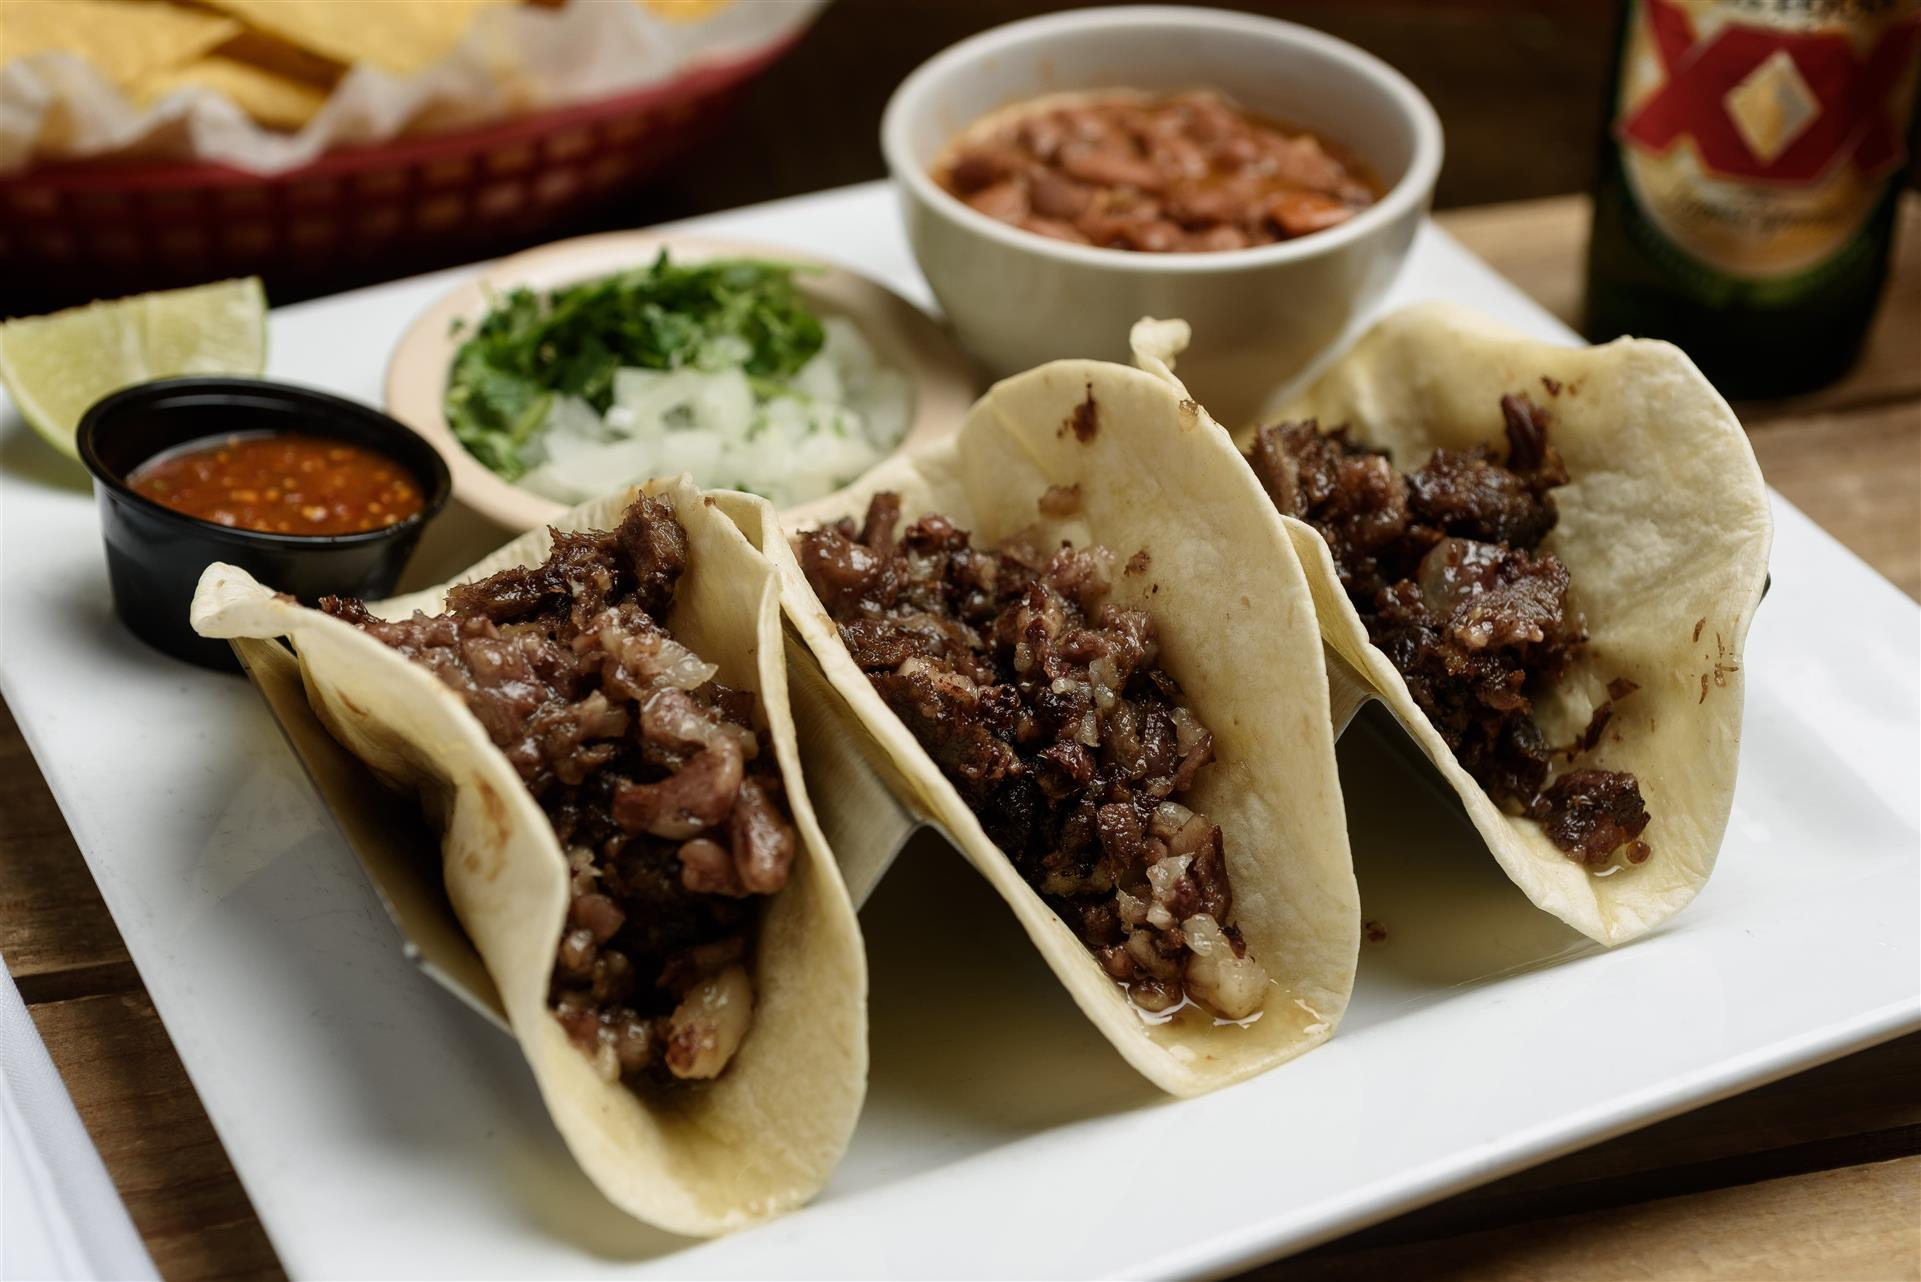 Three soft tacos with steak and onions on a white plate with a cup of salsa, onions, and beans